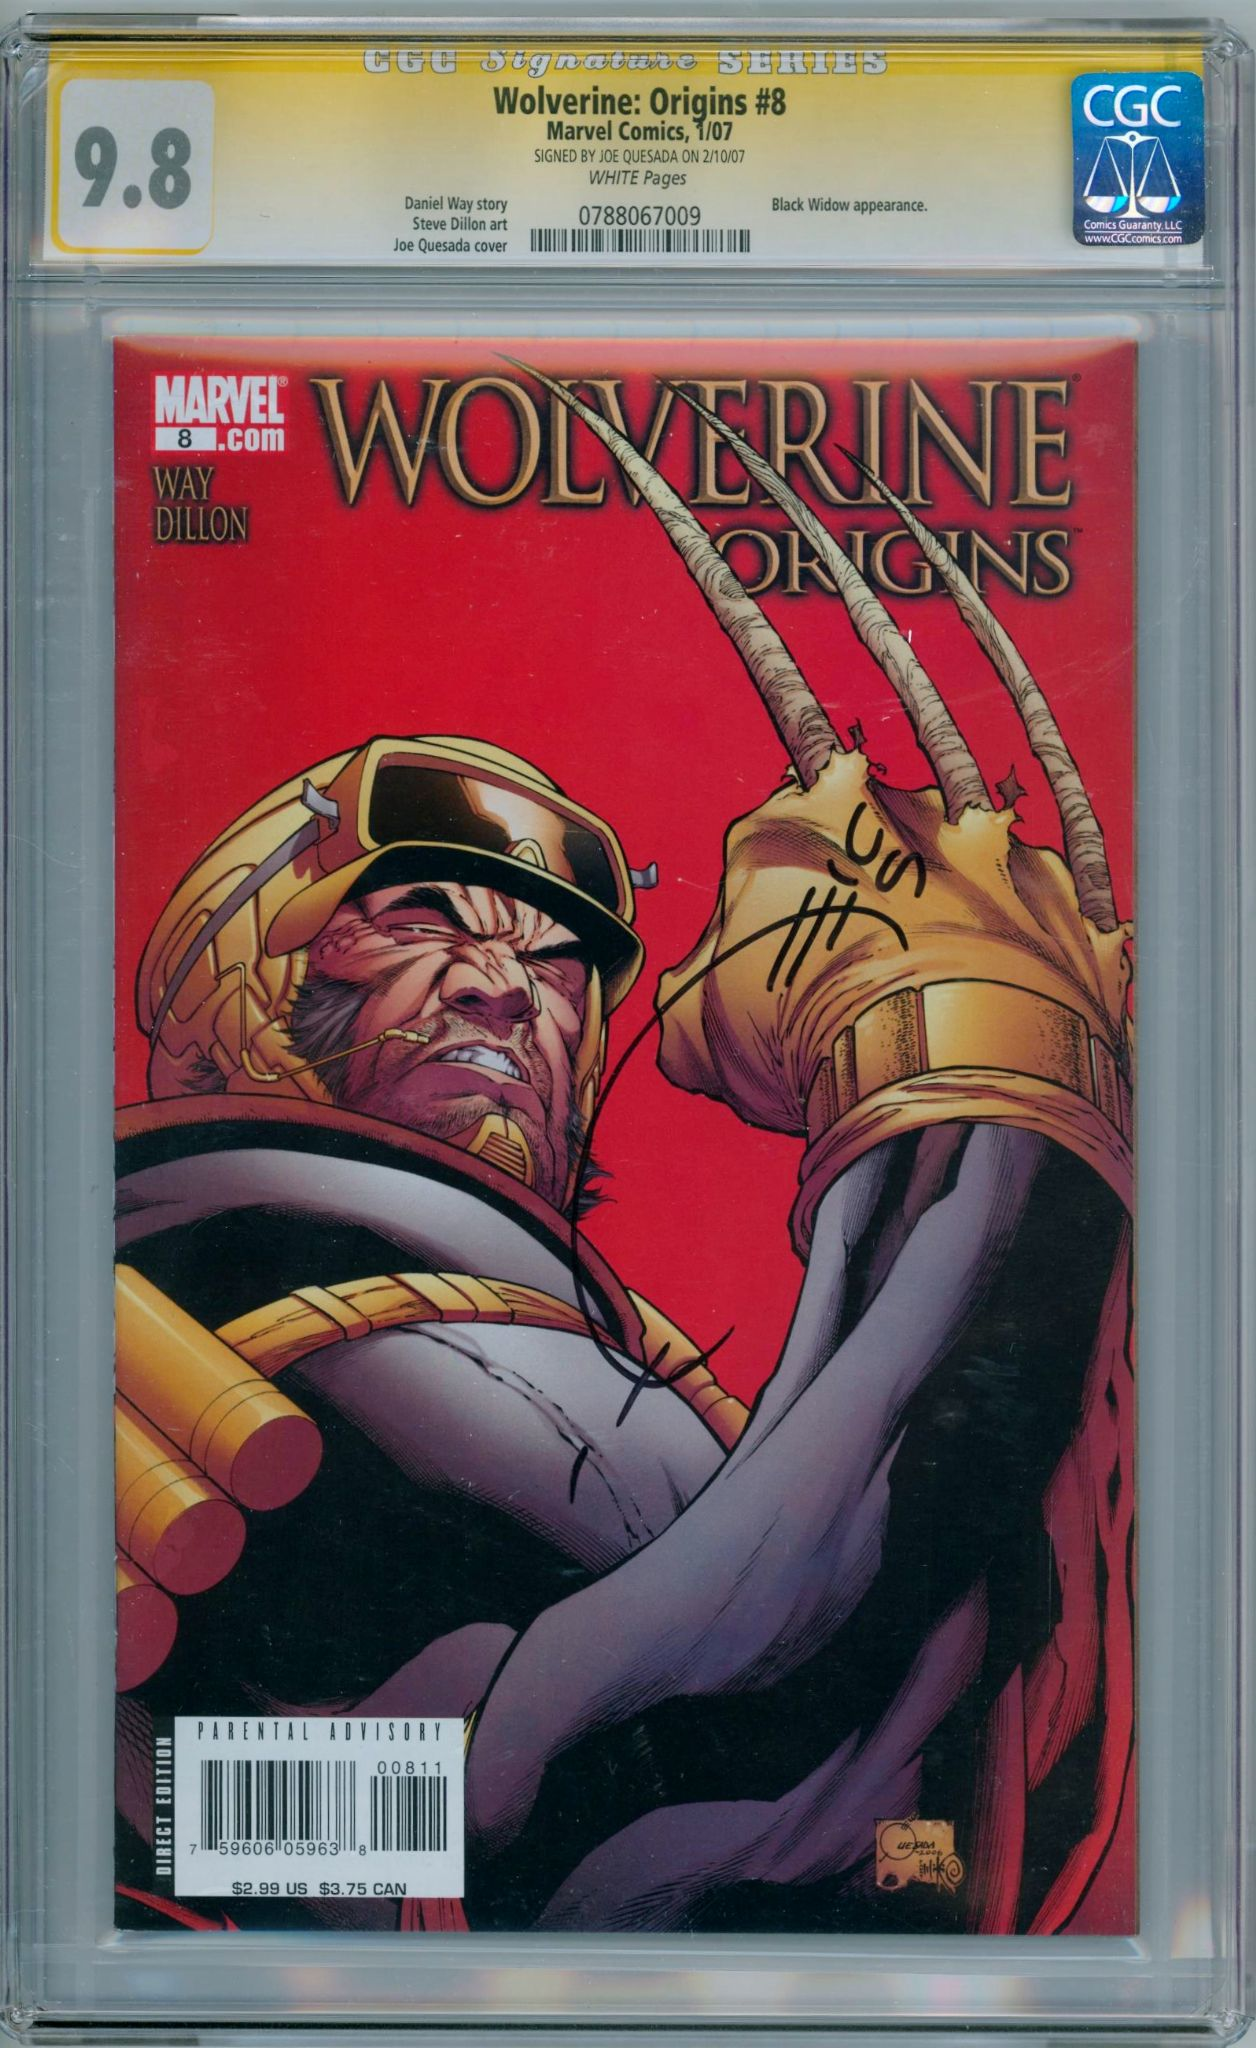 5aa192ab50c Wolverine Origins #8 CGC 9.8 Signature Series Signed Joe Quesada Marvel  comic book